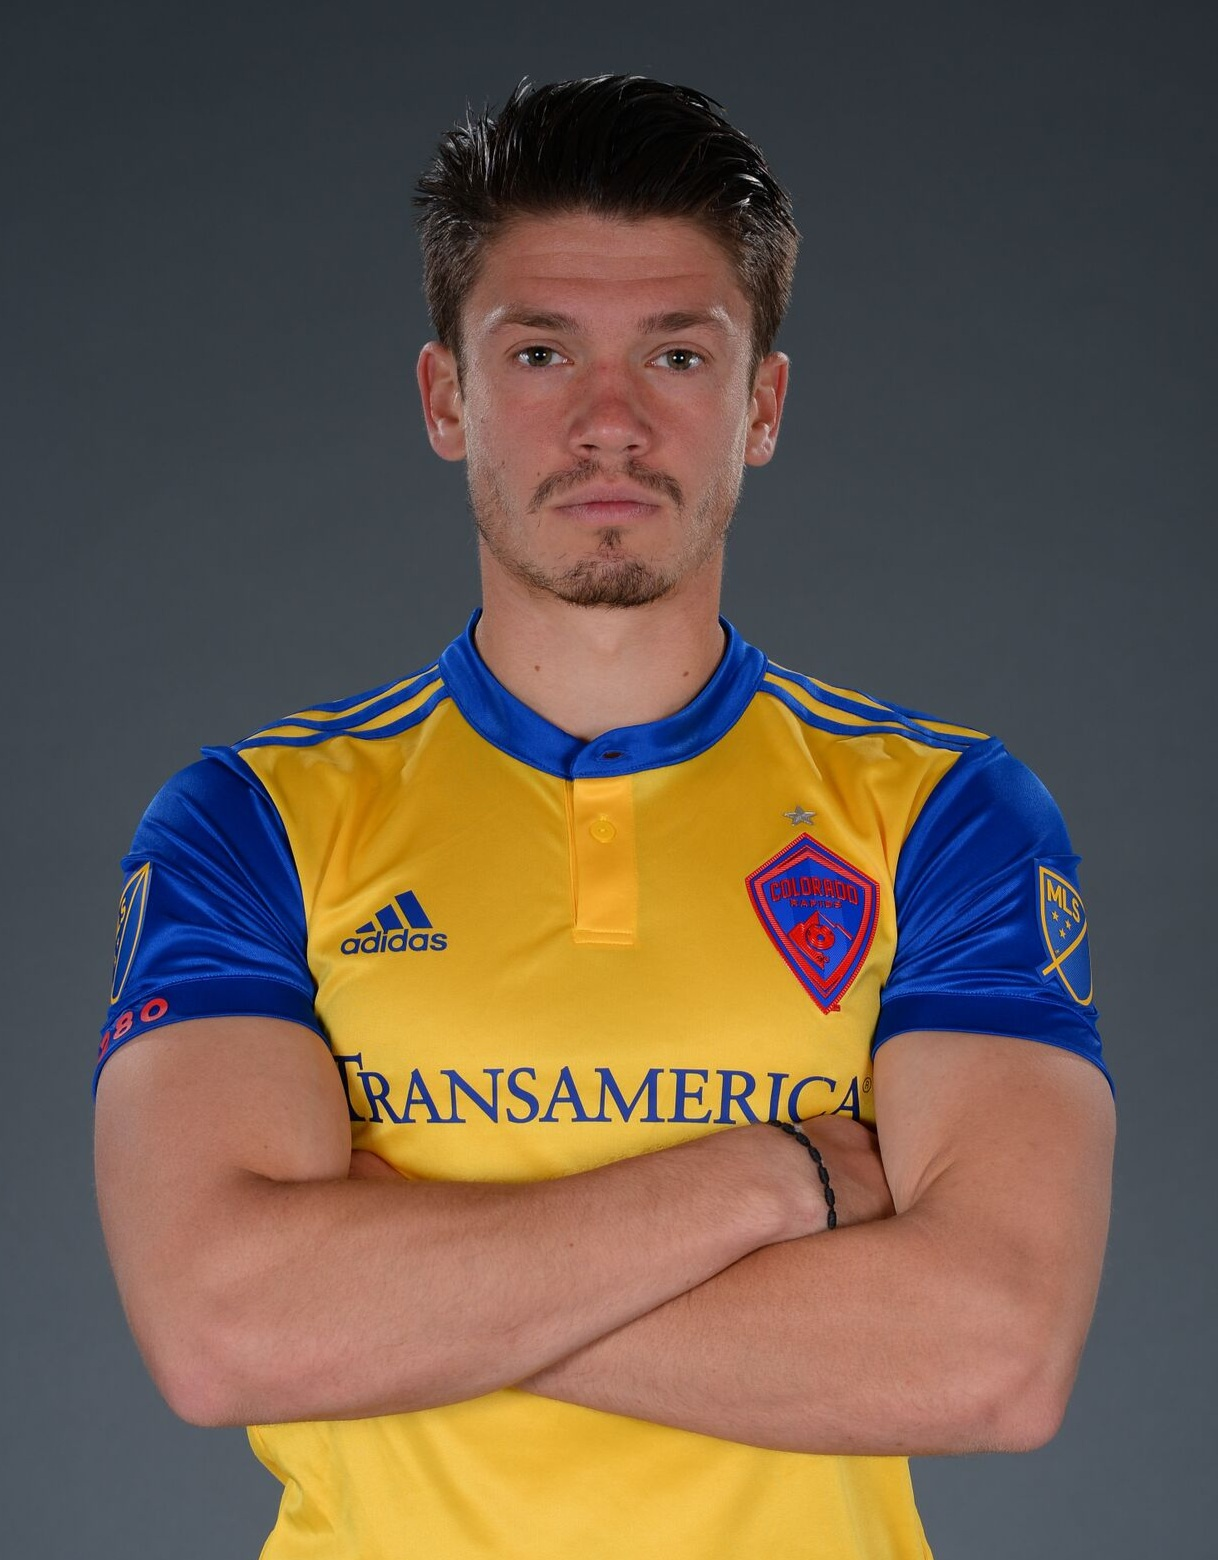 Mike Da Fonte - Mike has playing experience with the Colorado Rapids of the MLS. He also has played with OKC Energy, Phoenix Rising, and Sacramento Republic of the USL. Mike resides in Westchester, NY and is available to train players in the Westchester area.